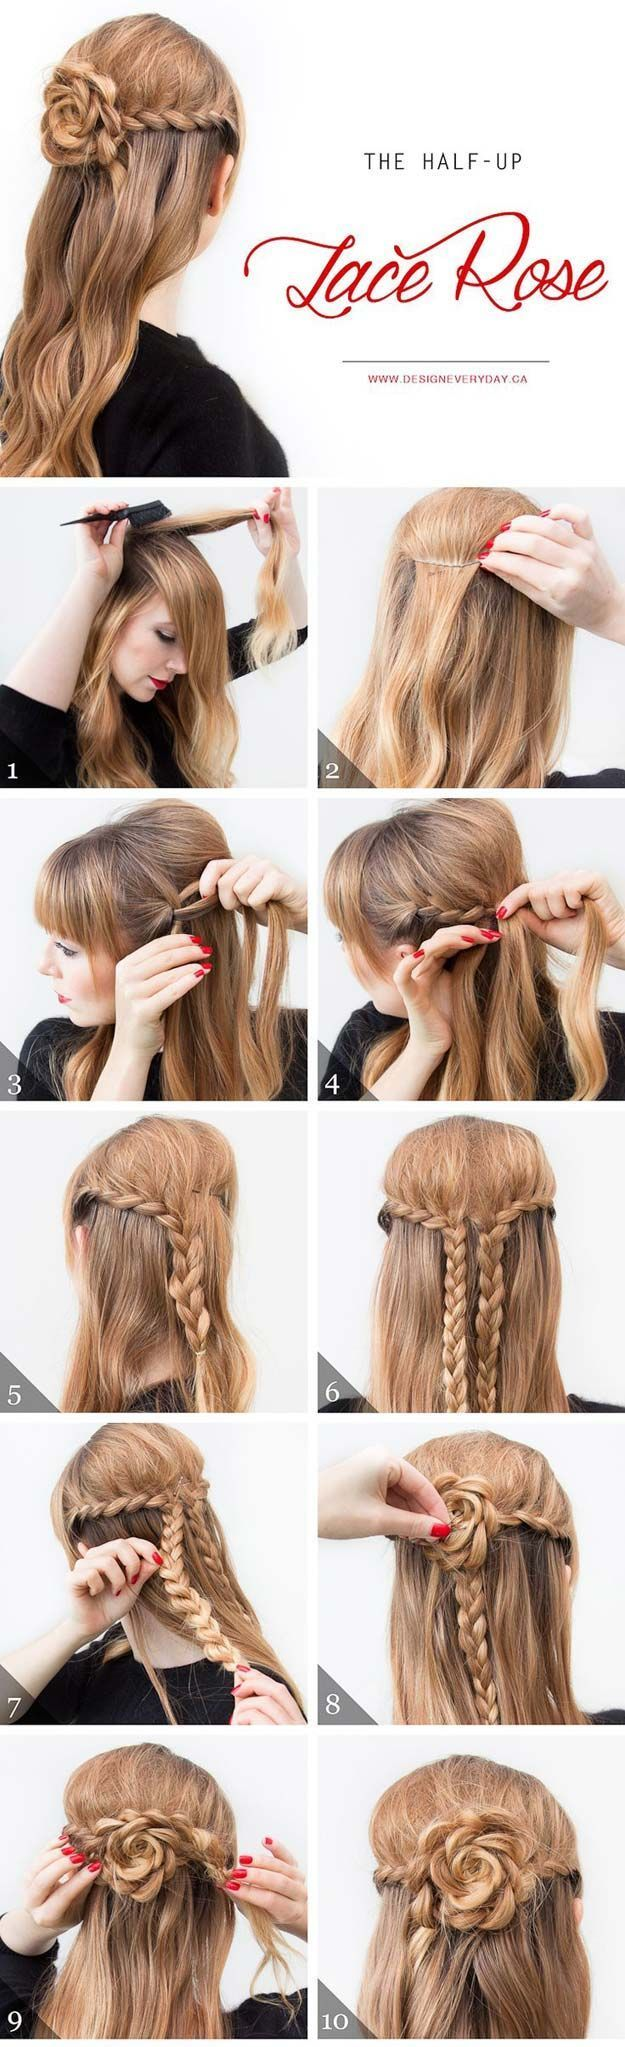 Cool and Easy DIY Hairstyles - The Half Up Lace Rose - Quick and Easy Ideas for Back to School Styles for Medium, Short and Long Hair - Fun Tips and Best Step by Step Tutorials for Teens, Prom, Weddings, Special Occasions and Work. Up dos, Braids, Top Kno